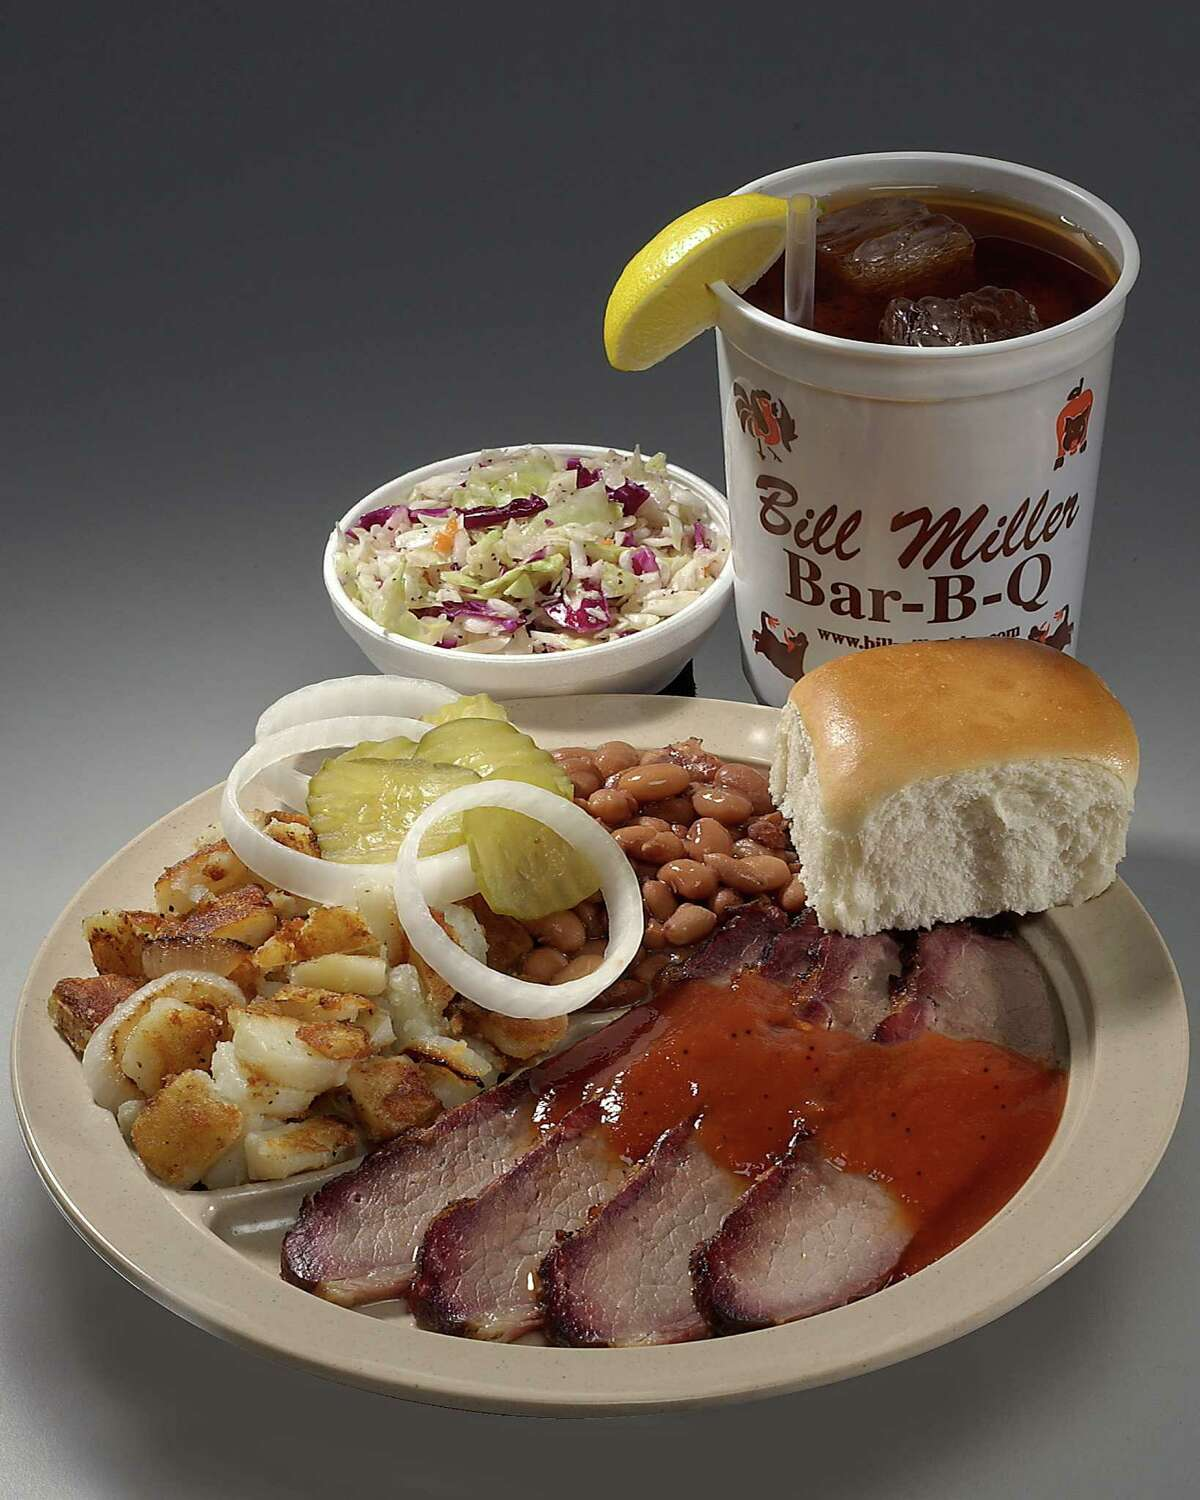 1. Bill Miller Bar-B-Q You don't know how much you appreciate the chain until you're out of the city.